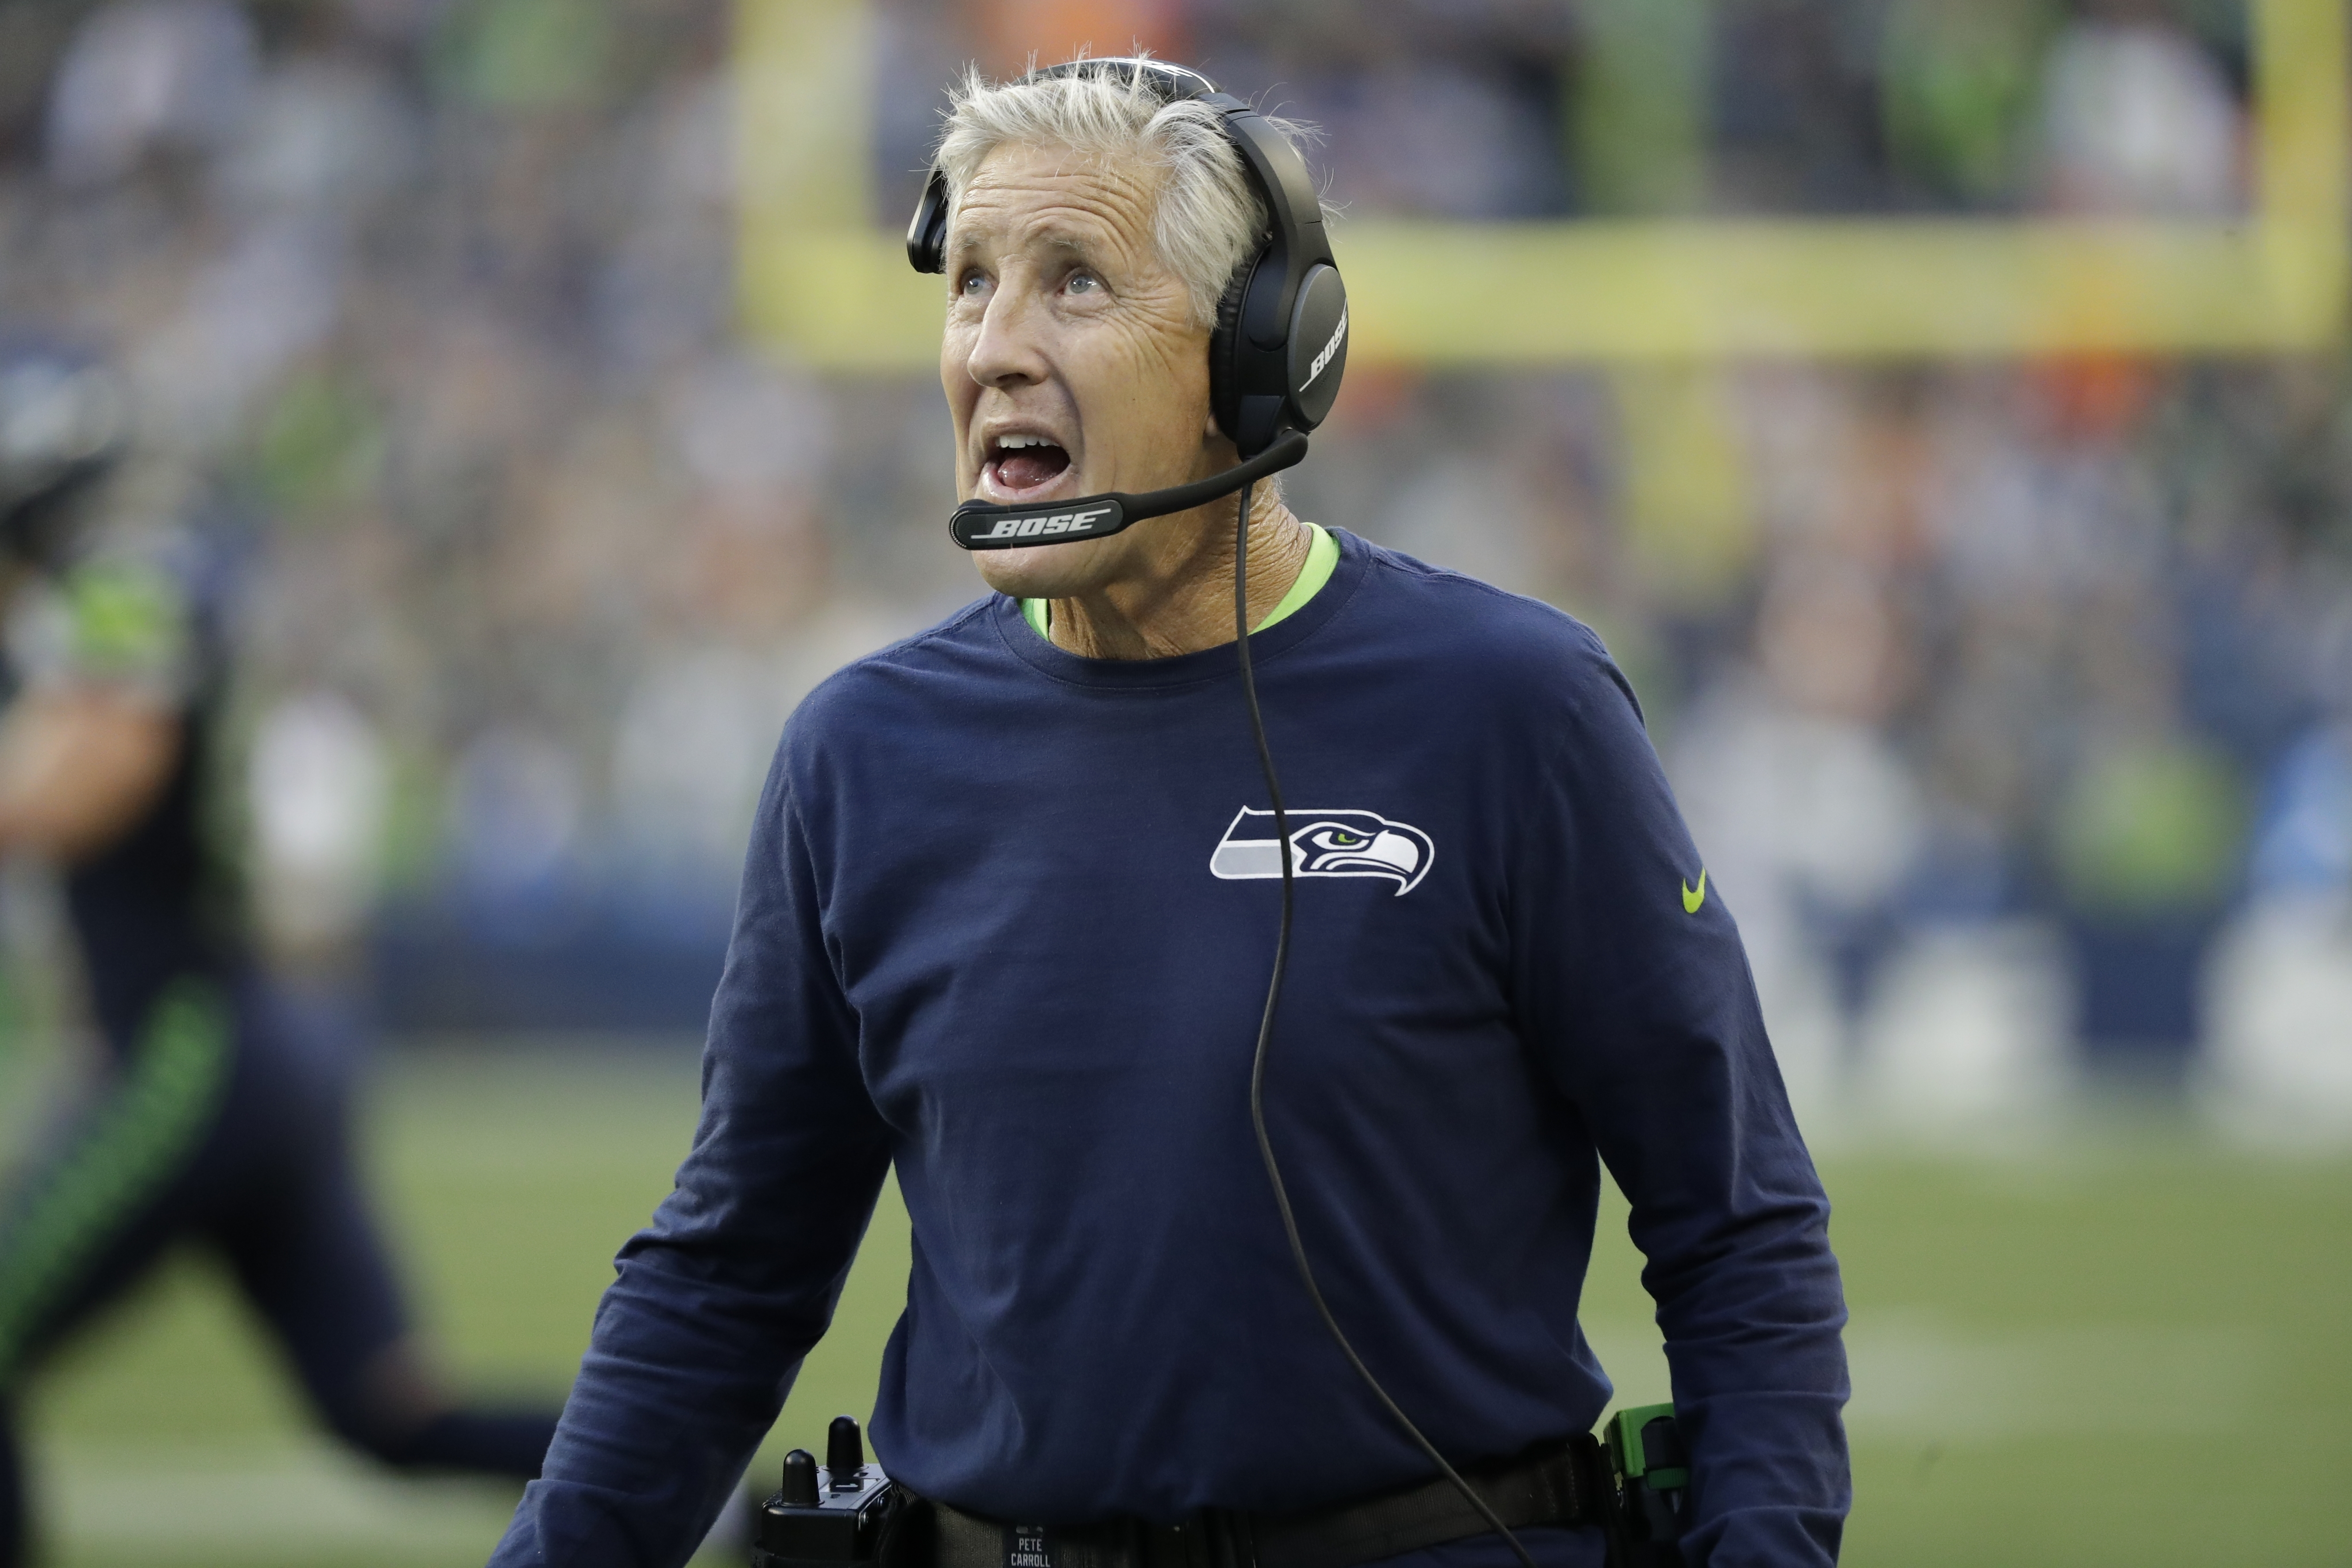 Pete Carroll Is The Nfl S Oldest Head Coach You Wouldn T Know It By Watching Him The Washington Post